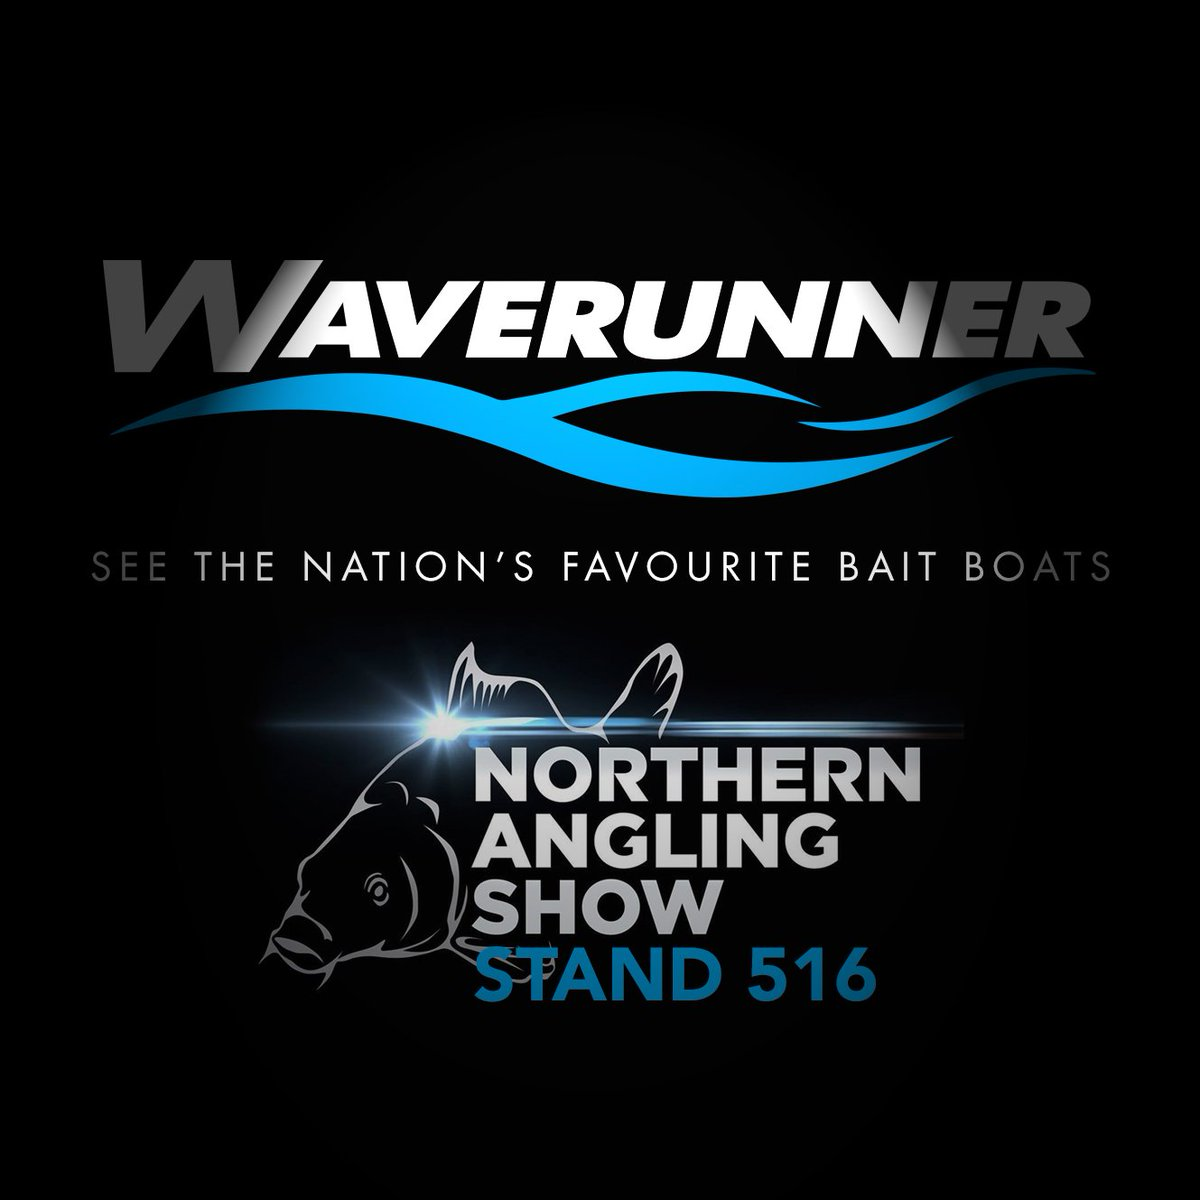 Come over and see us! #NAS #Northern #<b>Baitboat</b> #carpfishing #waverunner https://t.co/ZqodqvtS